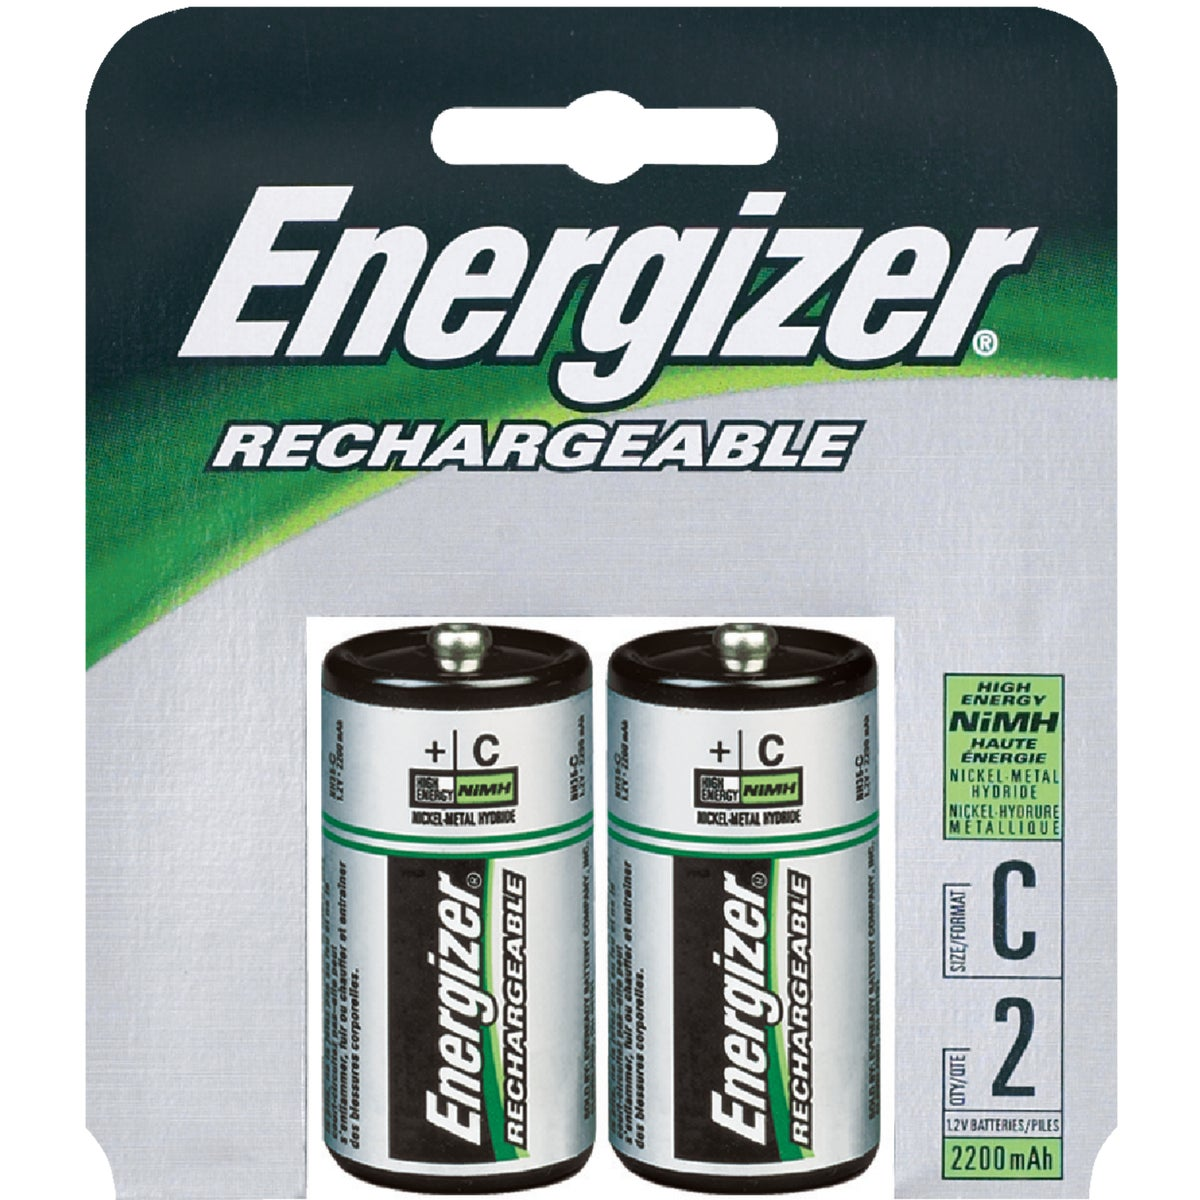 2CD C RECHARGE BATTERY - NH35BP2(R2) by Energizer